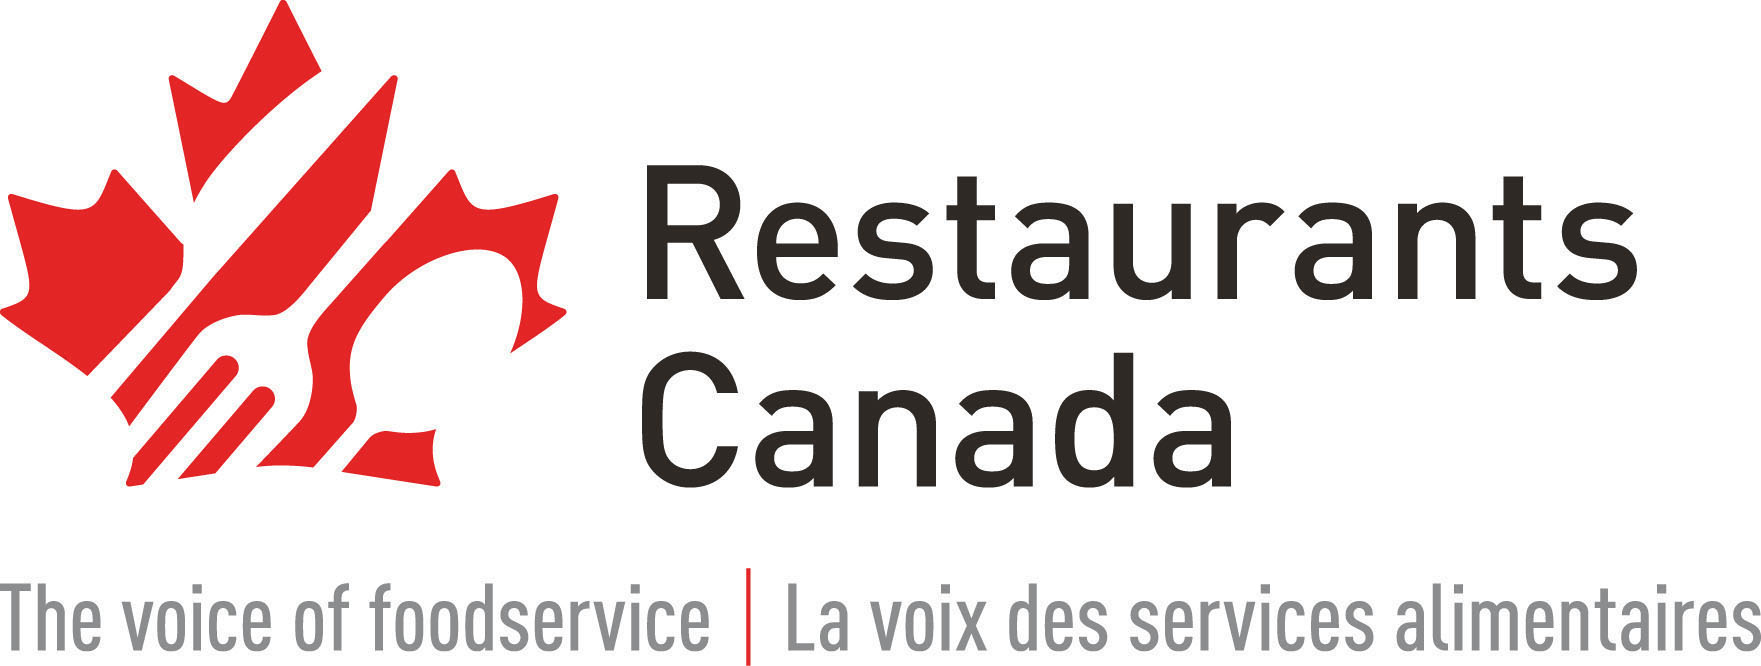 New Brunswick's restaurants need more working capital to successfully reopen